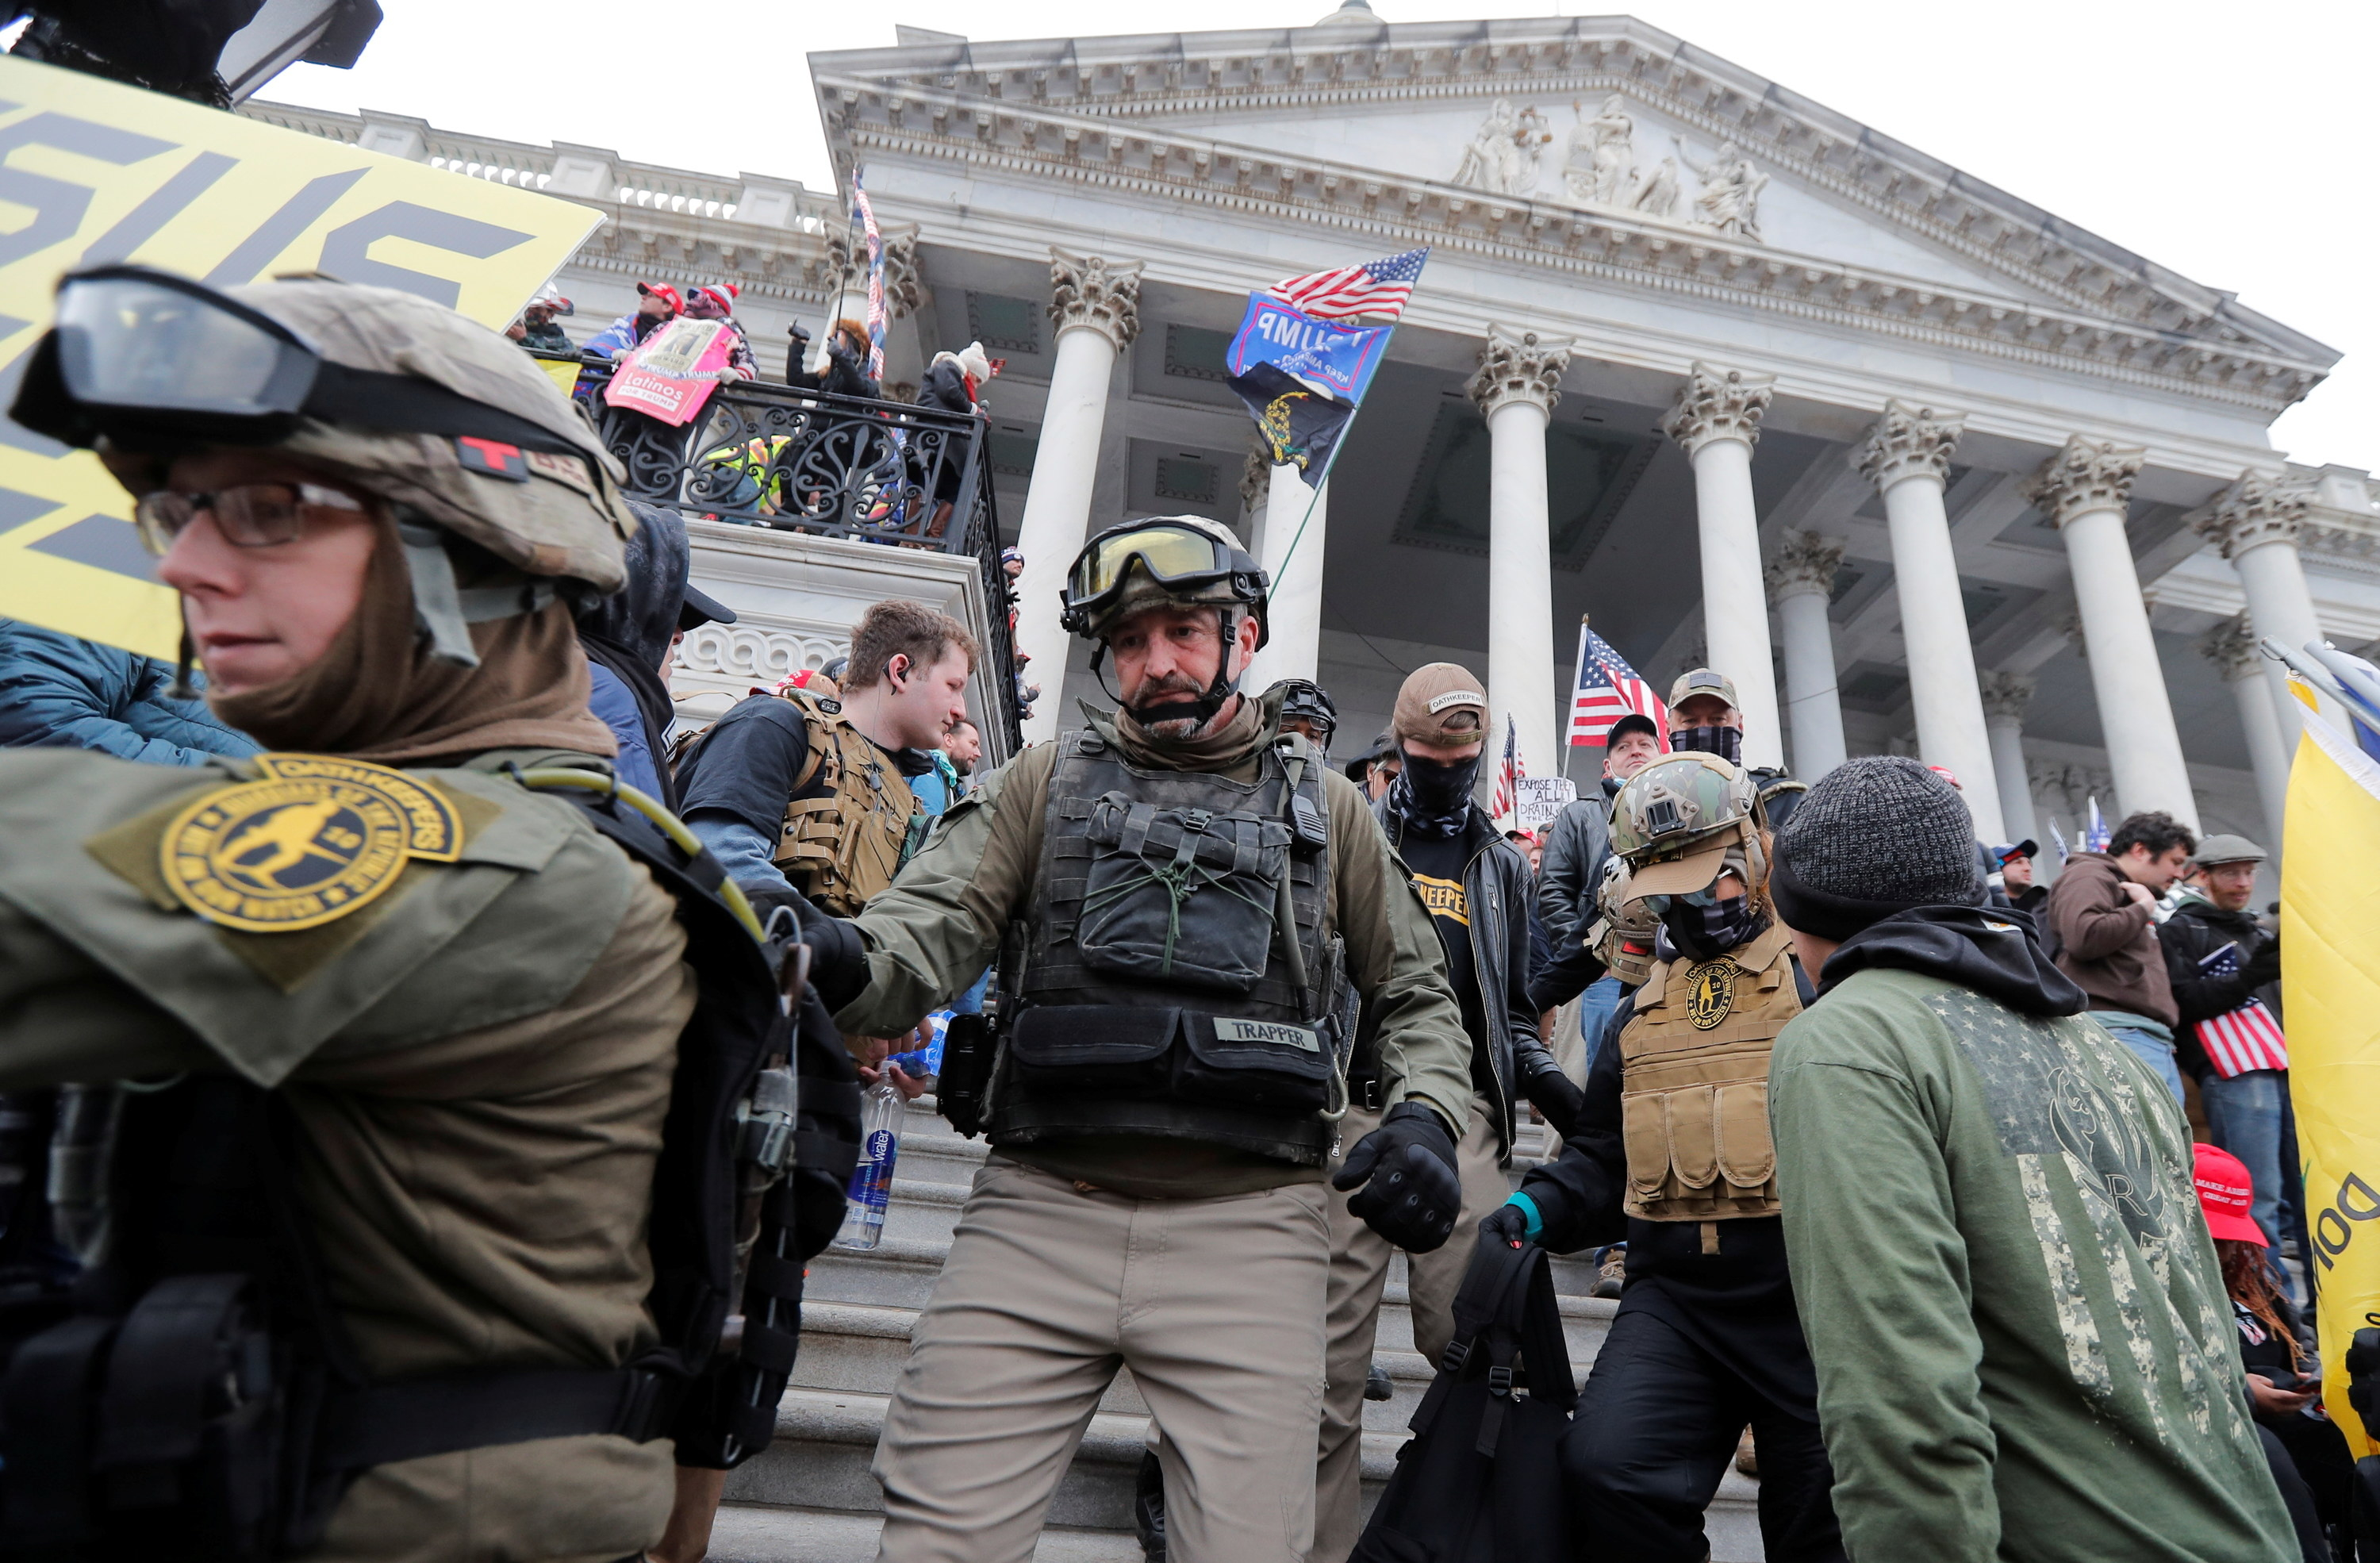 People wearing tactical gear including vests, helmets, and goggles on the Capitol steps